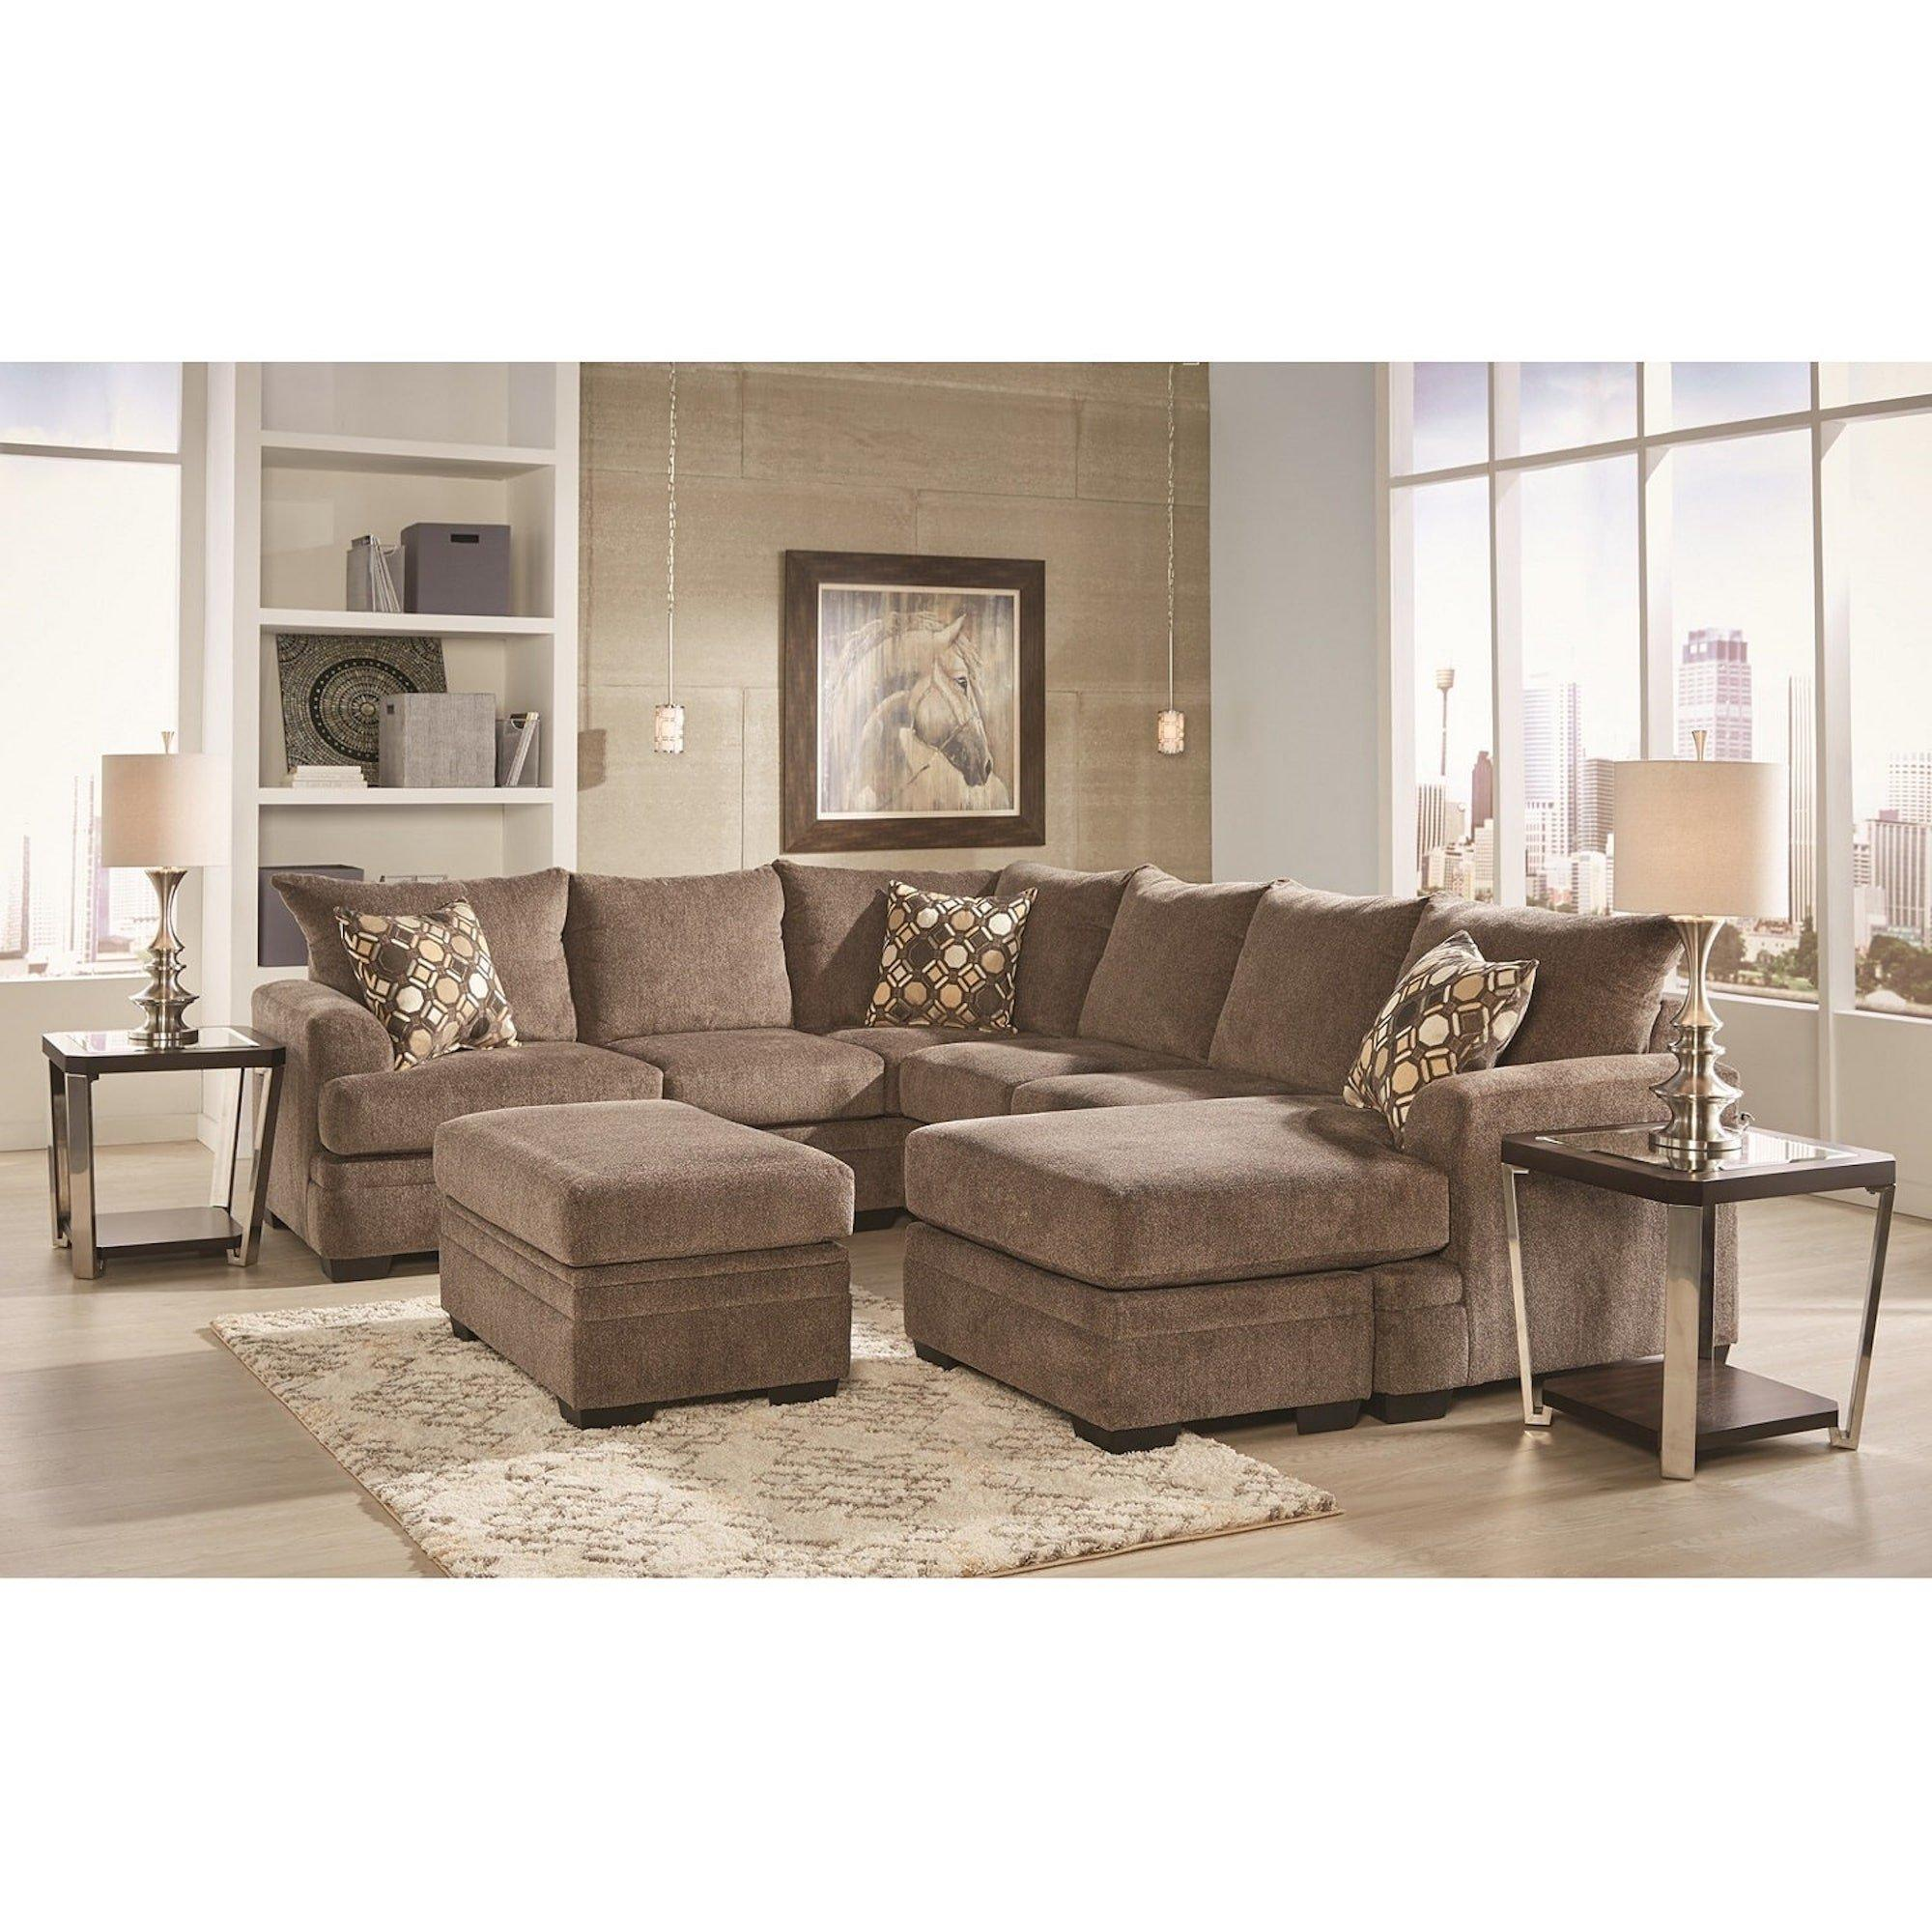 3 piece kimberly sectional living room collection with storage ottoman